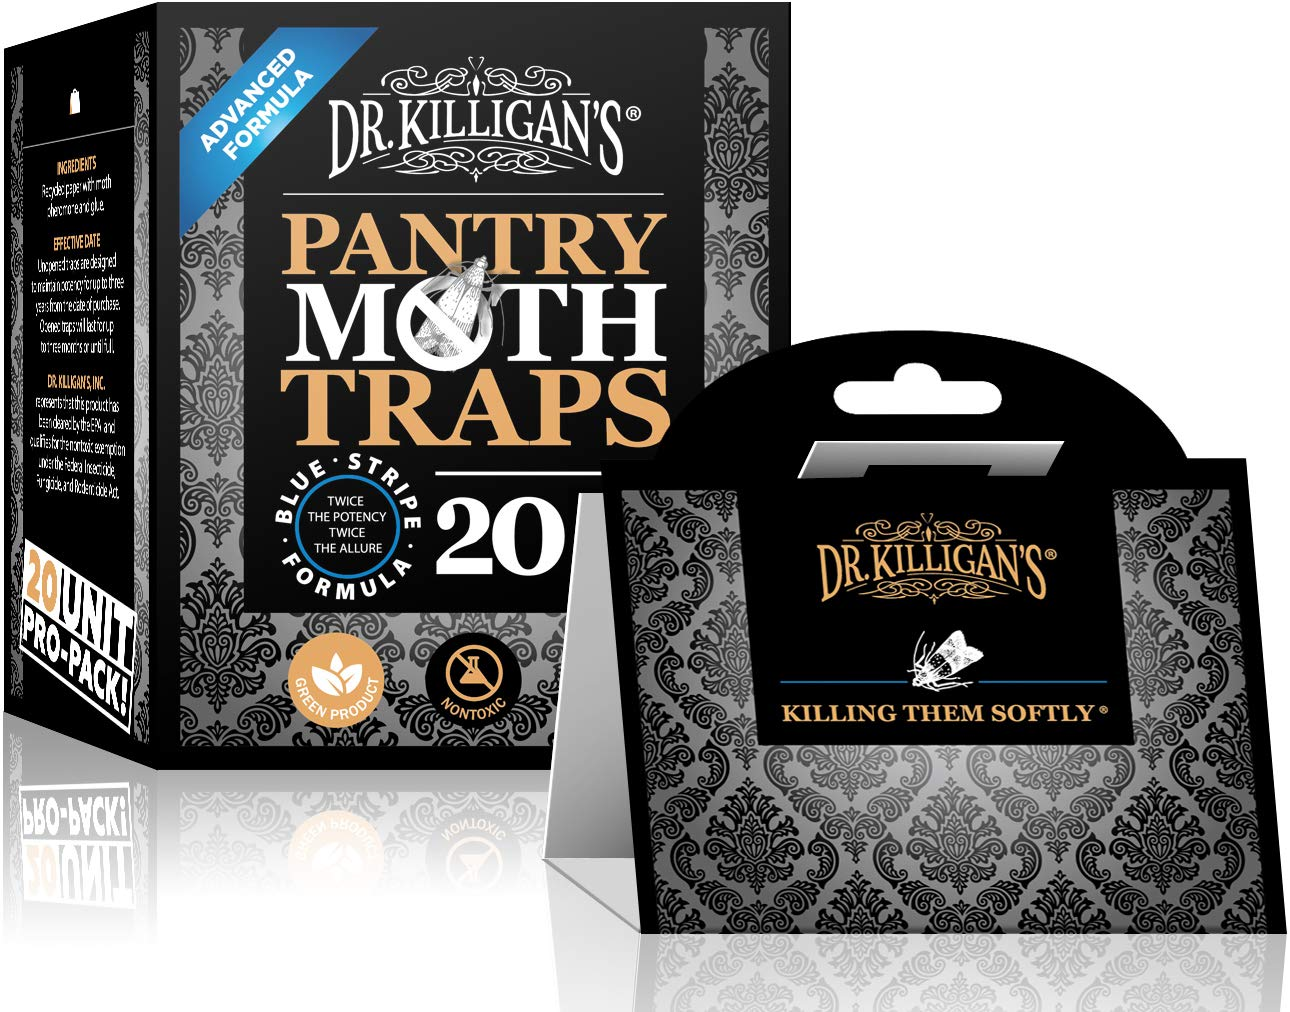 Dr. Killigan's Premium Pantry Moth Traps with Pheromones Prime | Safe, Non-Toxic with No Insecticides | Sticky Glue Trap for Food and Cupboard Moths in Your Kitchen | Organic (Black, 20)